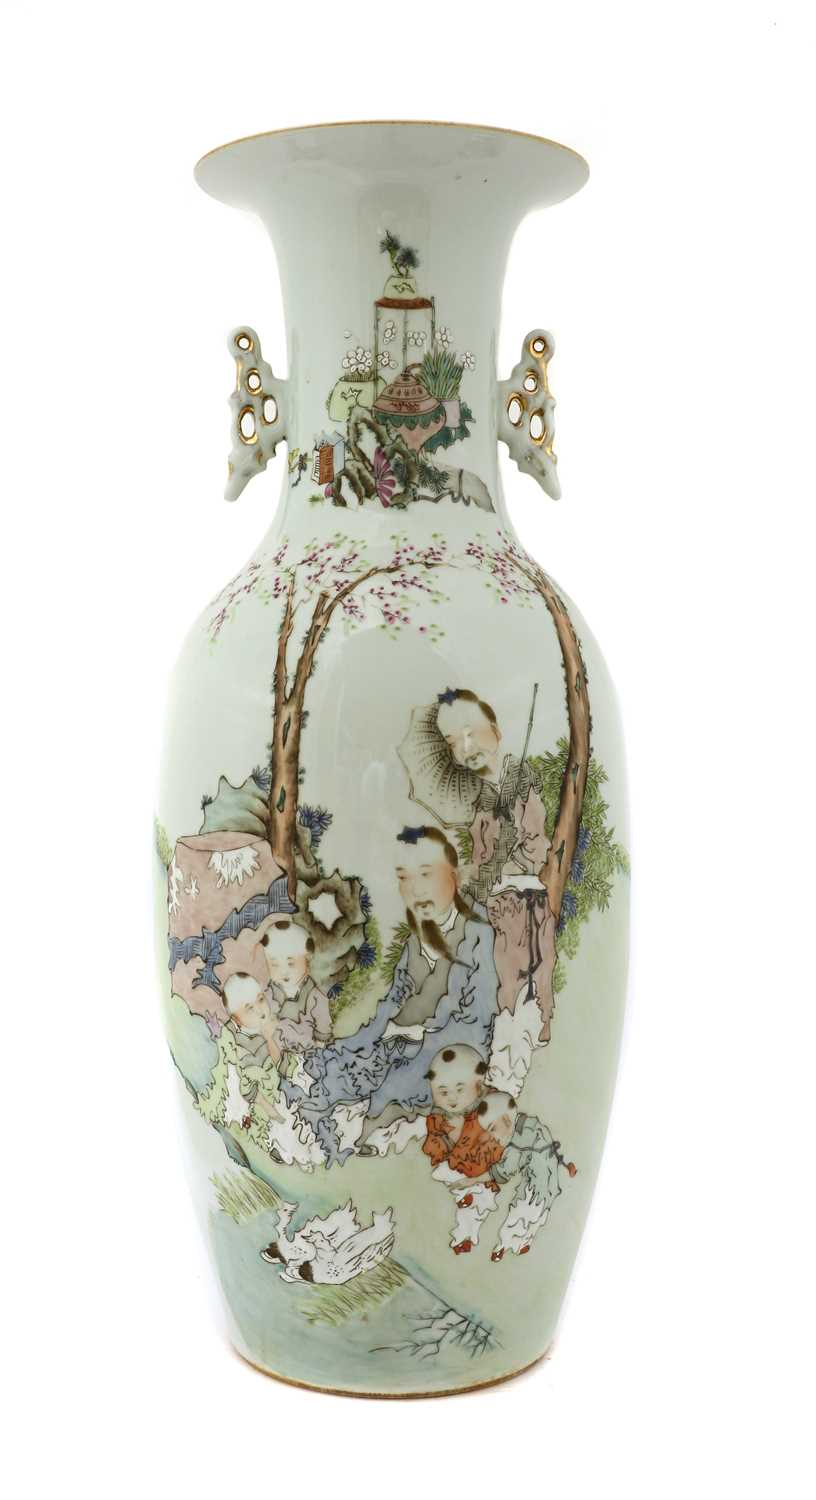 Lot 70 - A Chinese famille rose vase